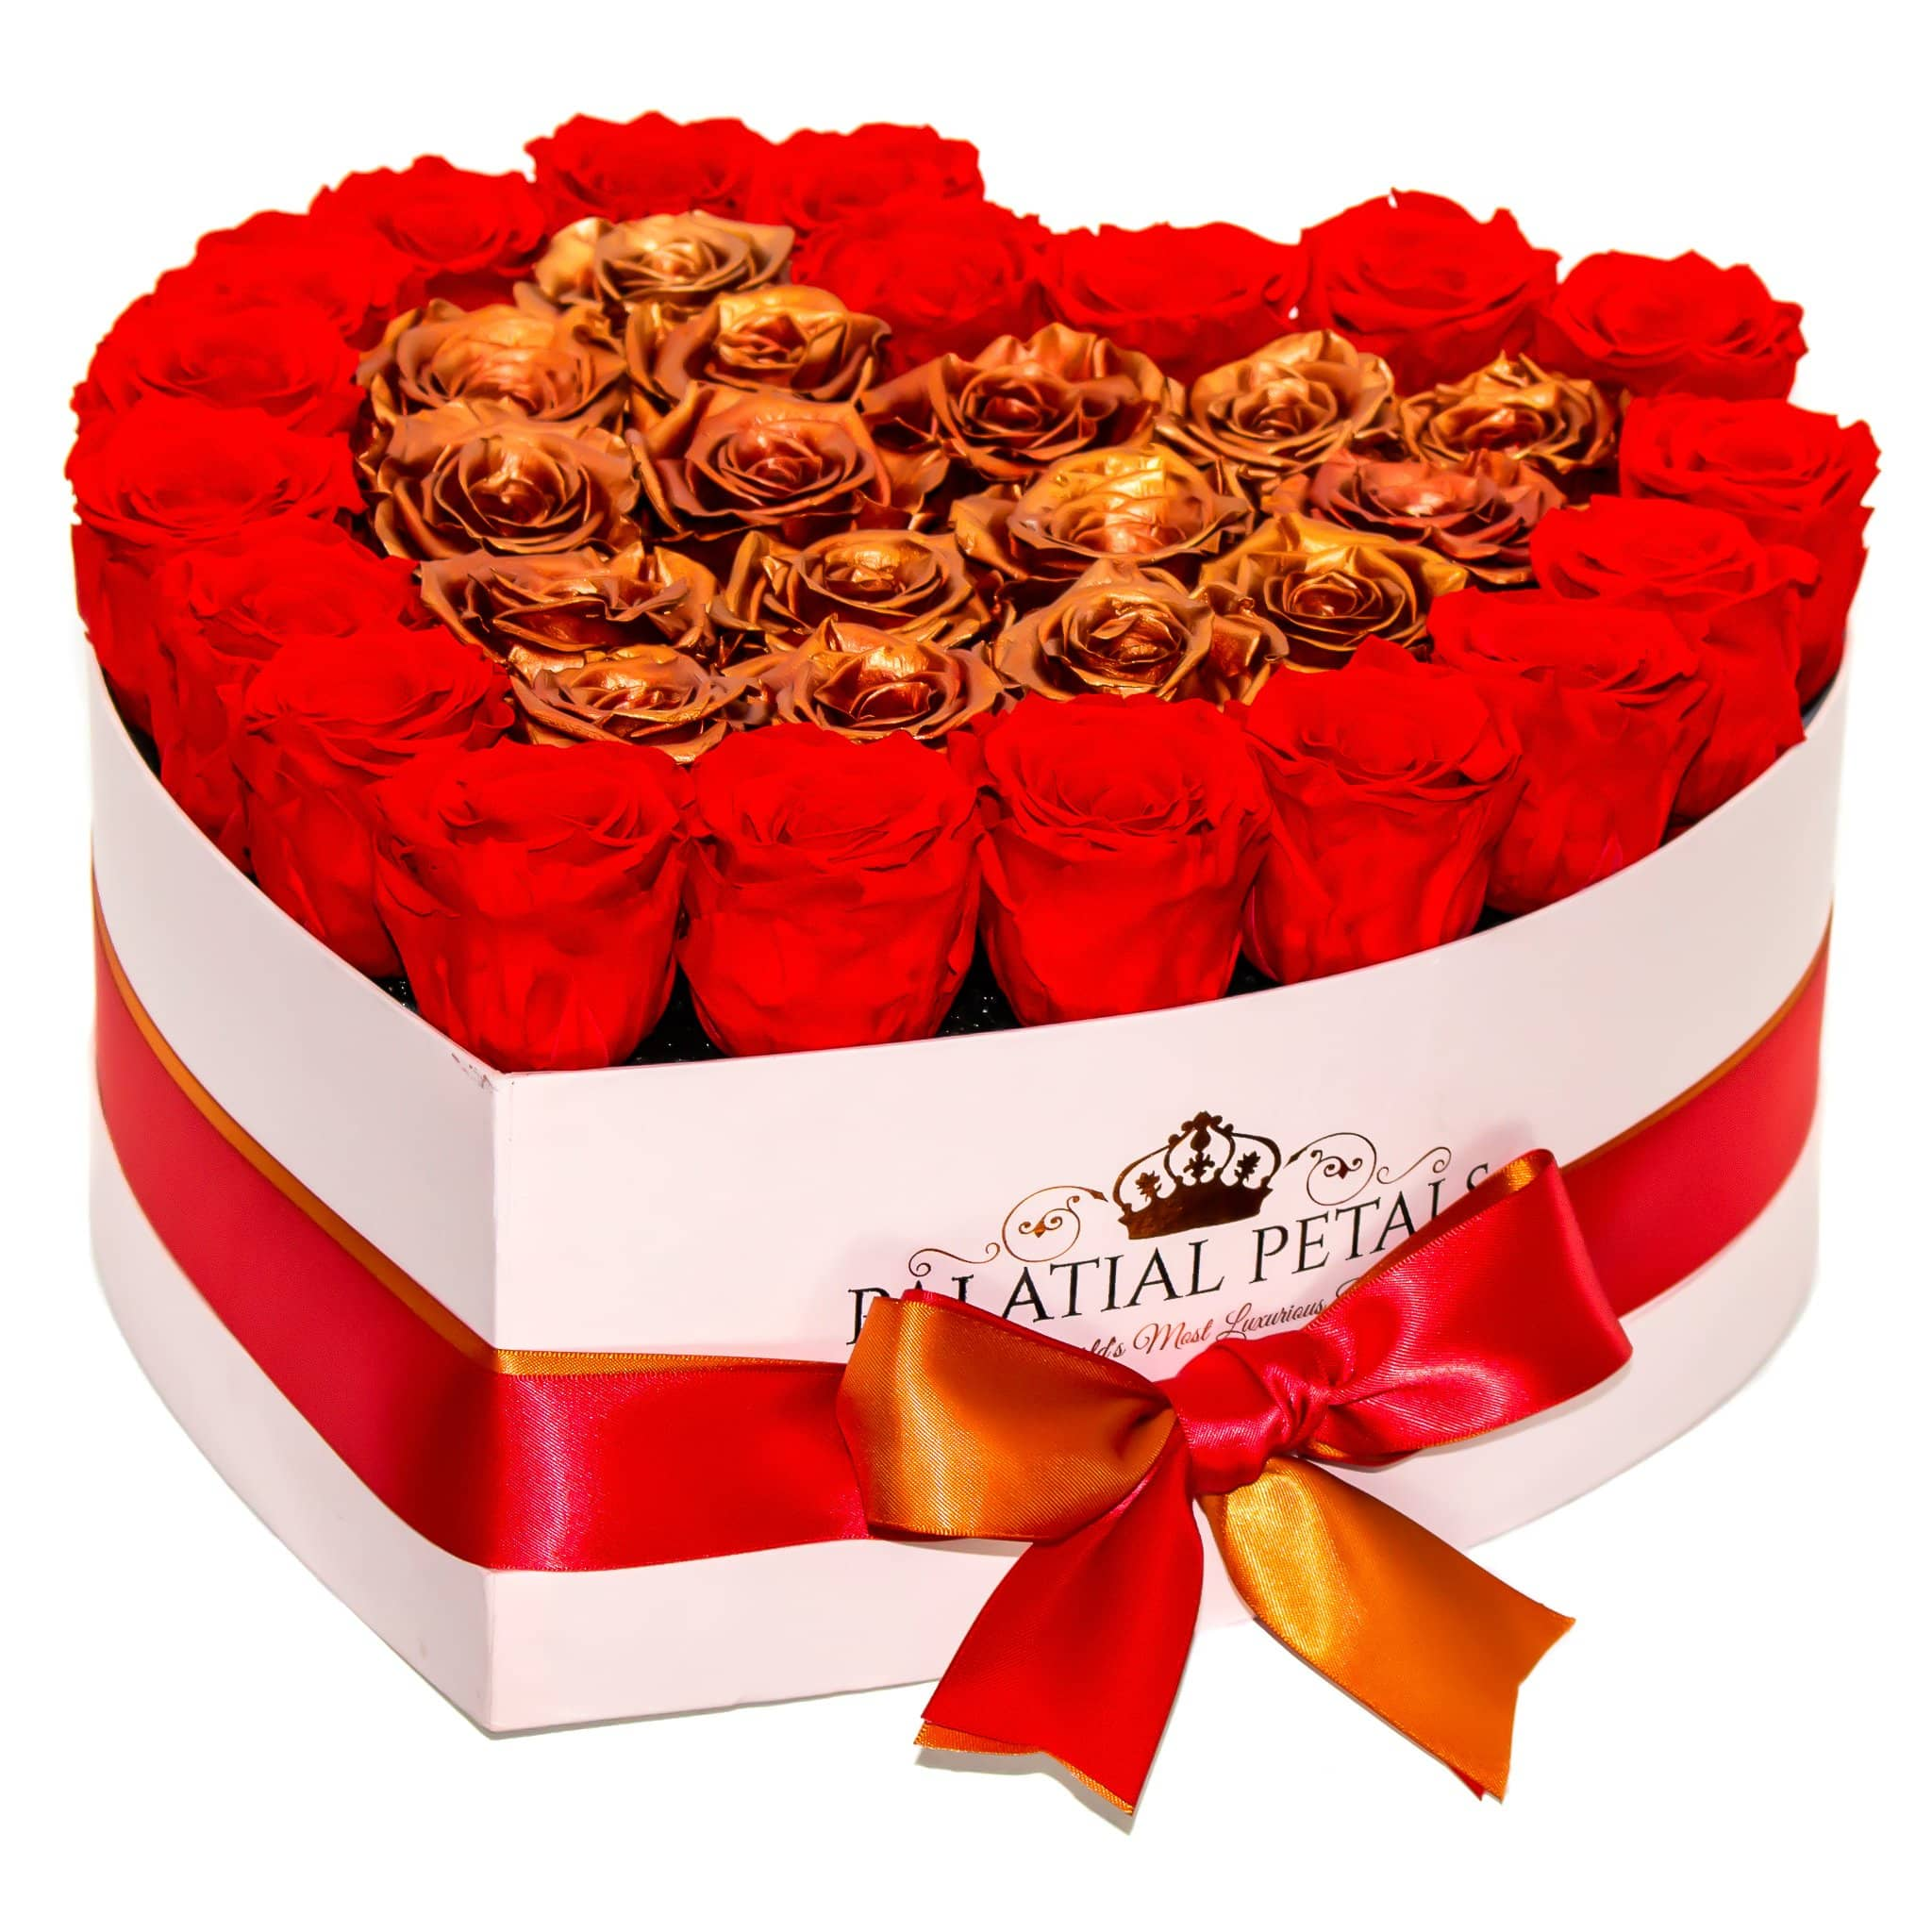 Heart Shape Pink Rose Box - Ferrari Red & Rose Gold Timeless Luxury™ Roses - Palatial Petals